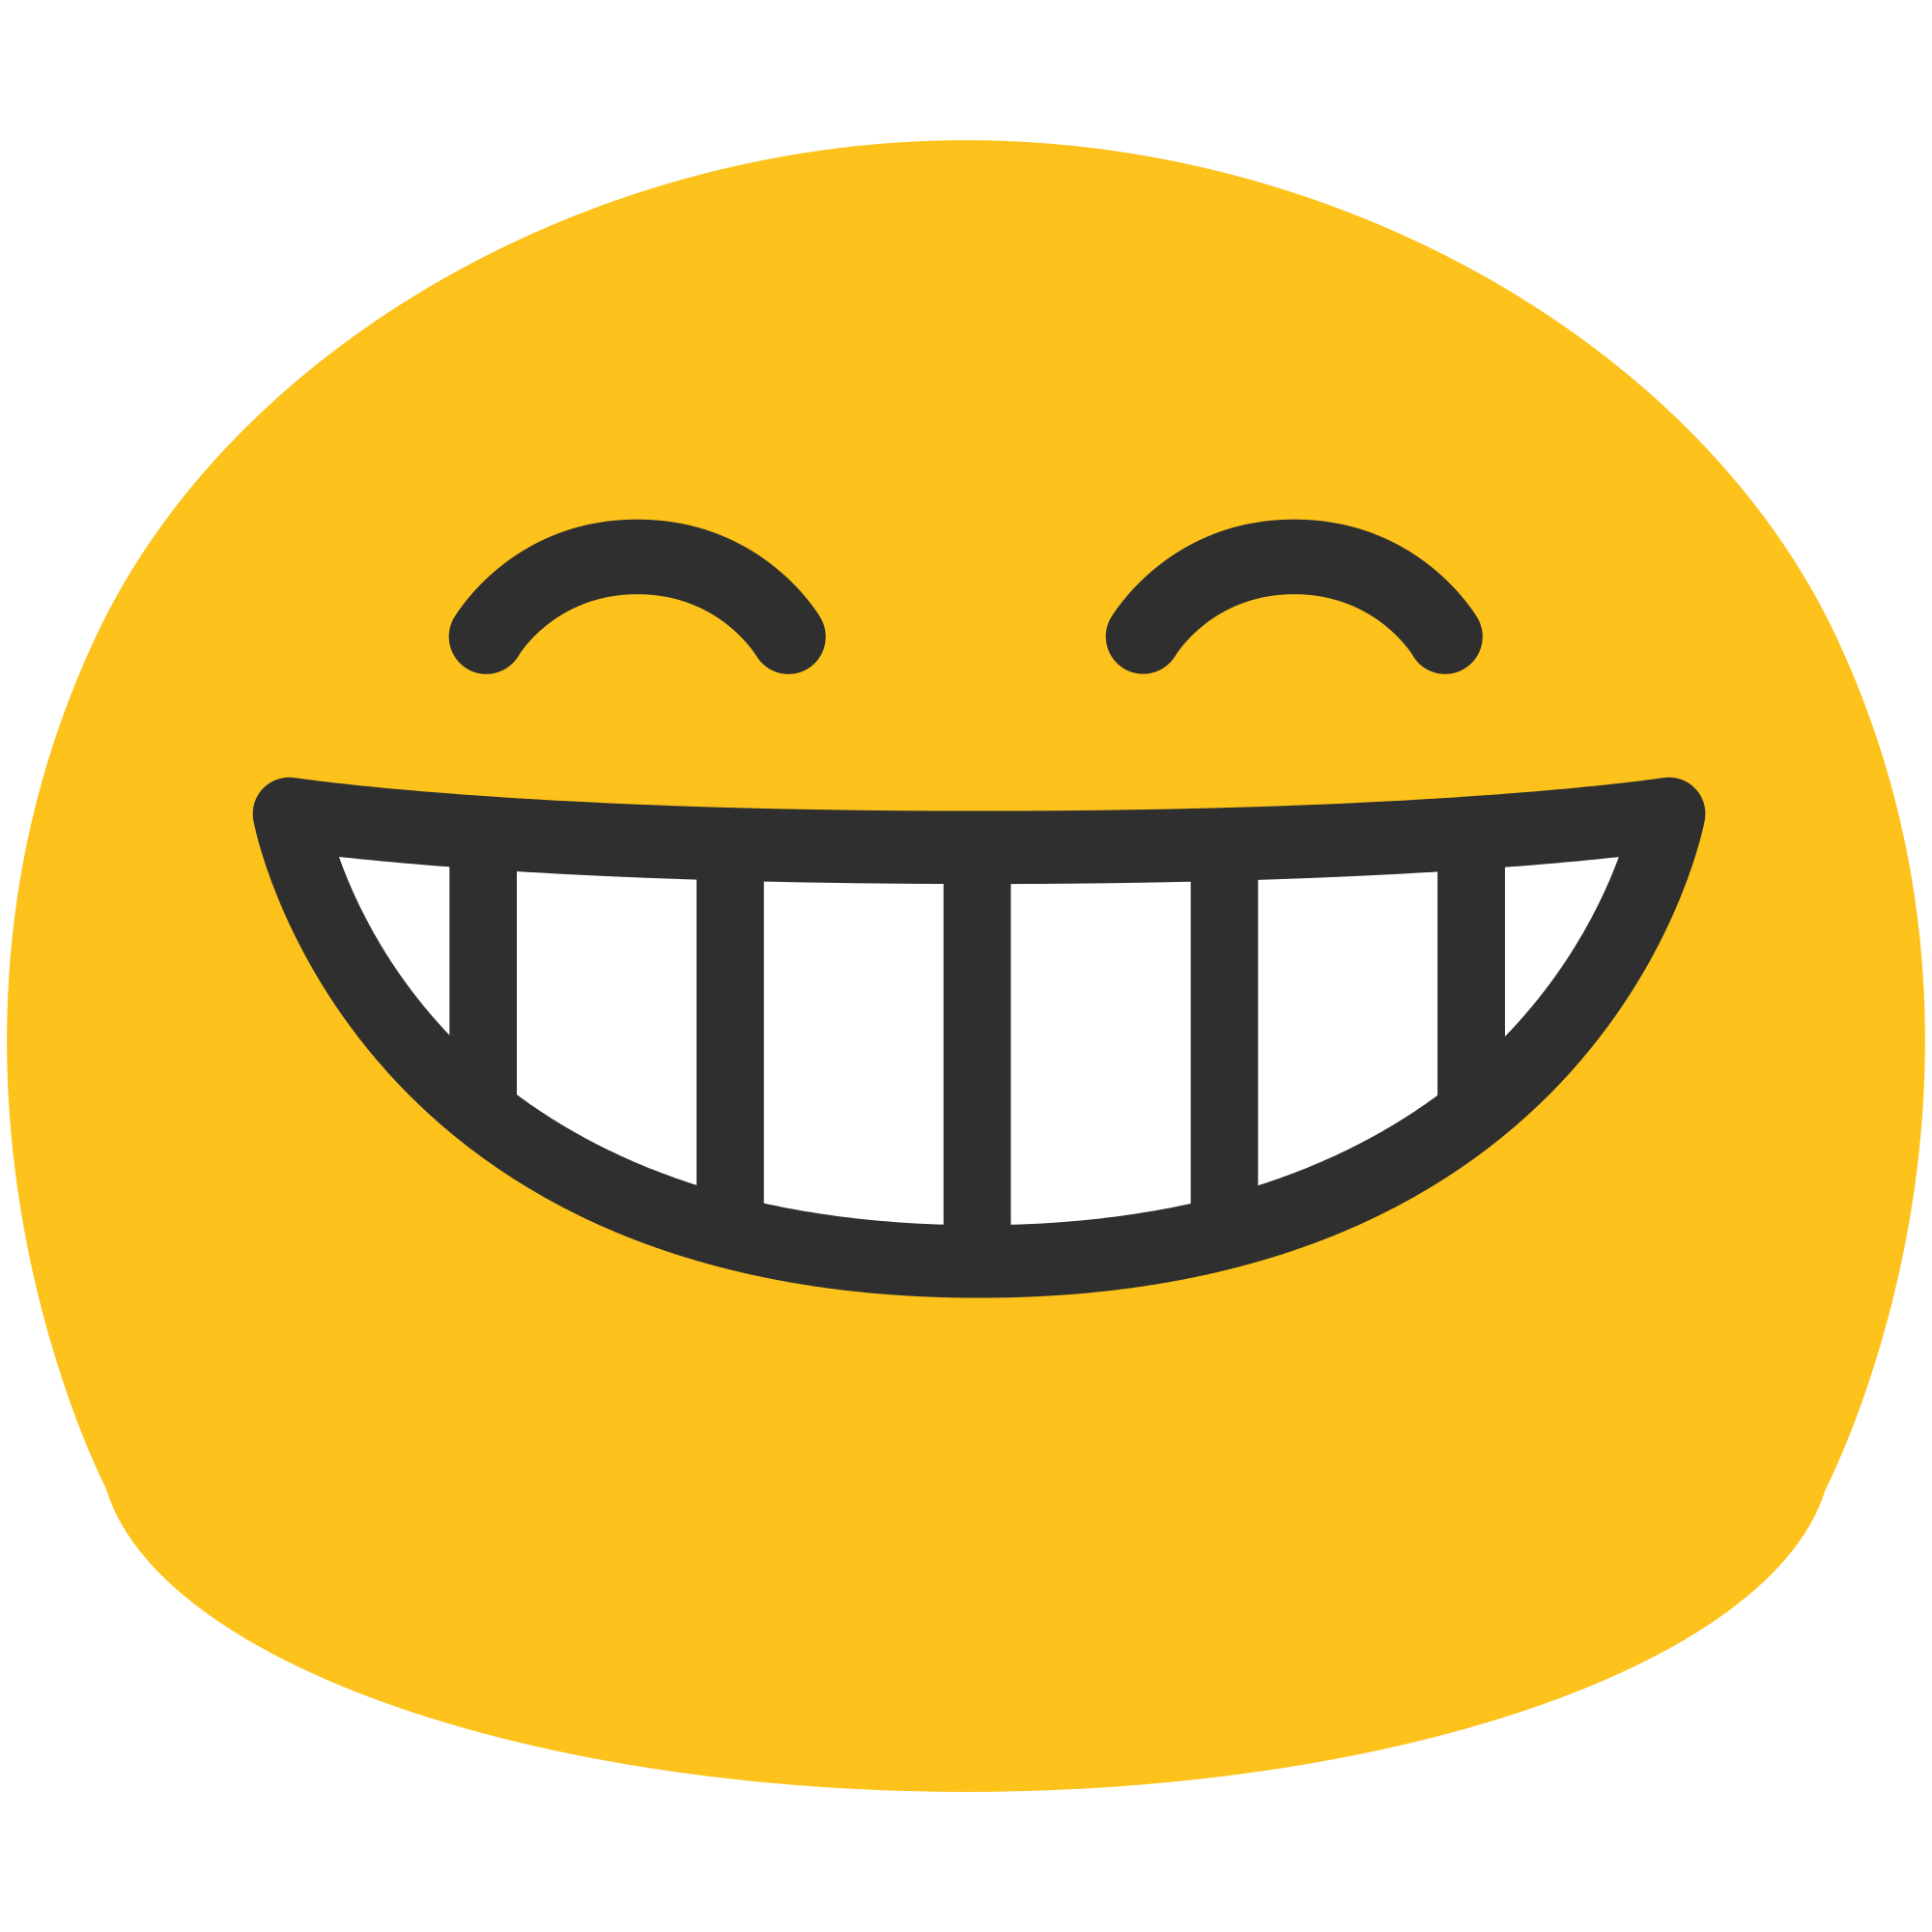 Emoticons png download. Emoticon ghost transparent stickpng